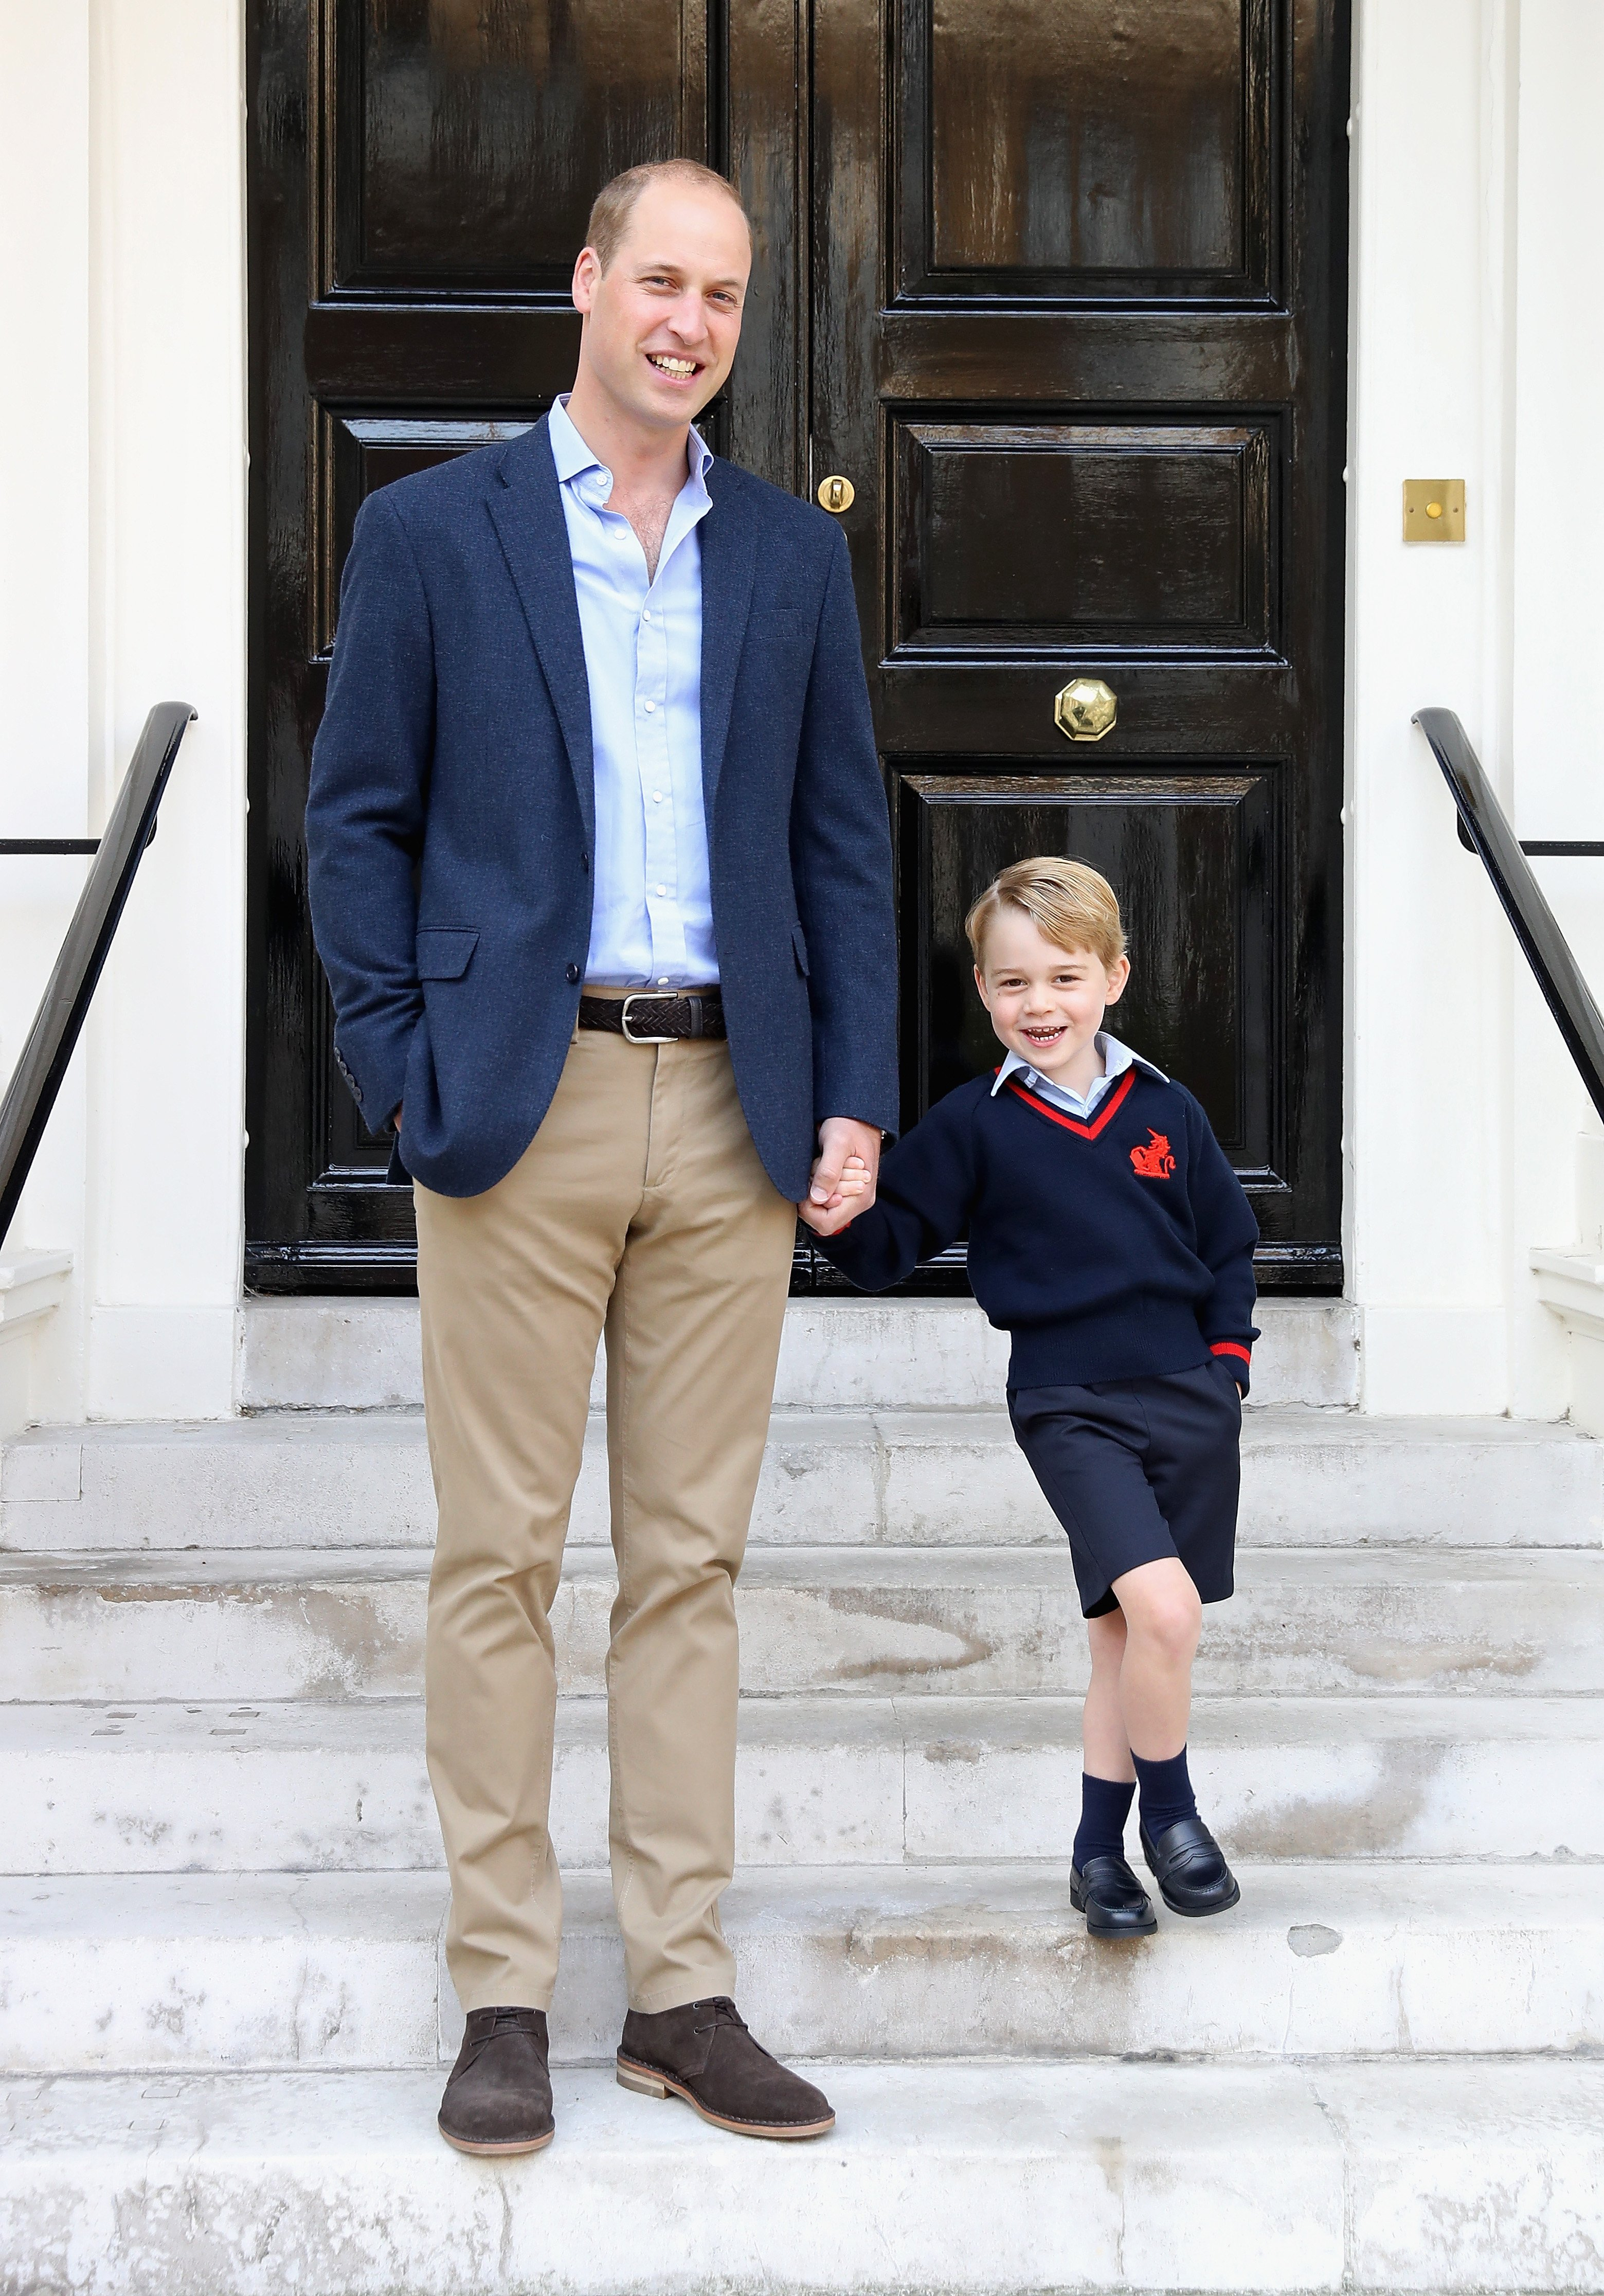 Prince William and his son, Prince George on his first day of school on September 7, 2017, in London, England. | Source: Getty Images.